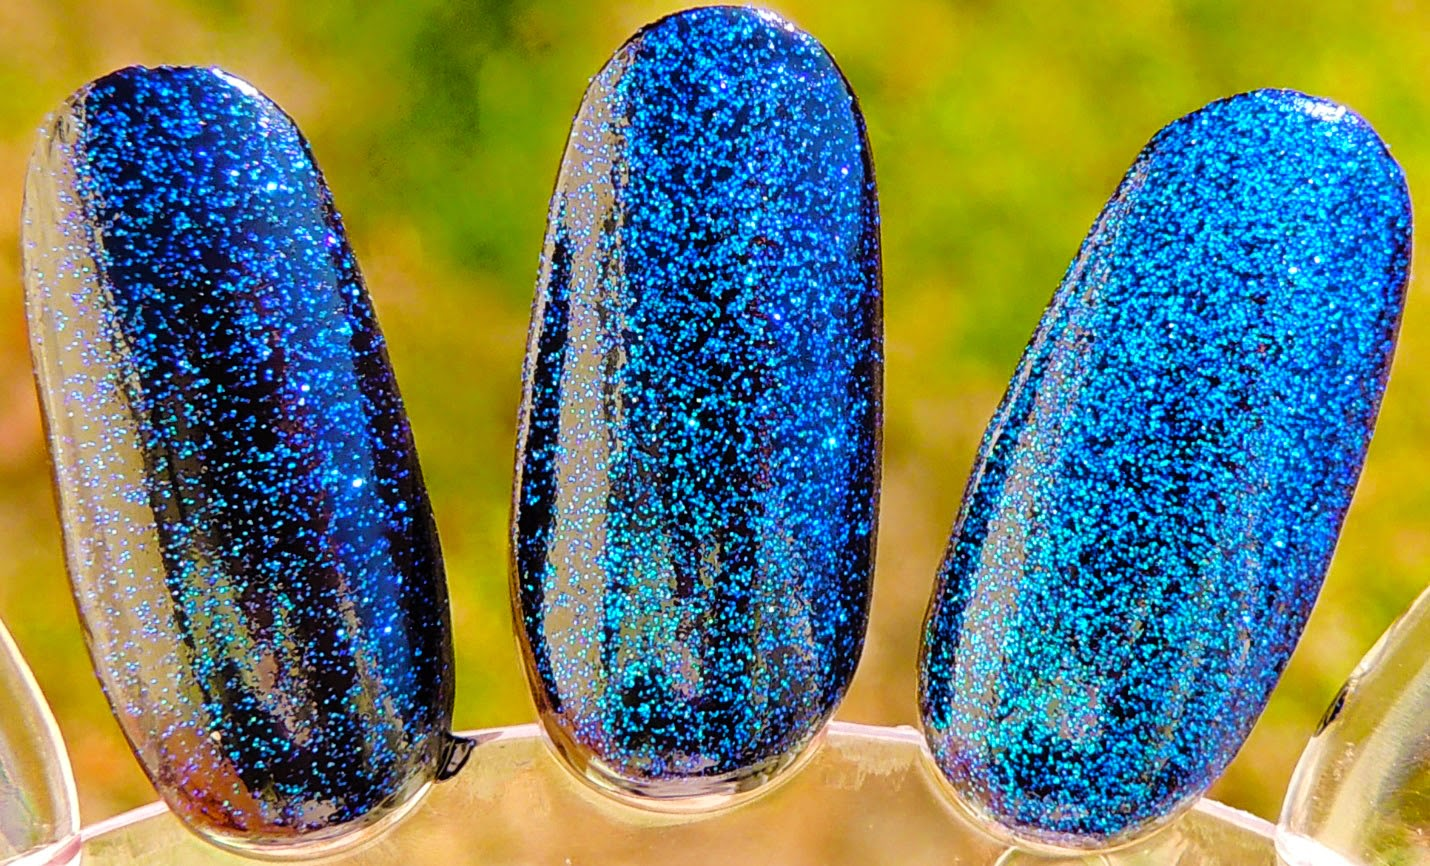 SUN DAZZLER GLAZE Nail Polish A MICRO COLOR CHANGING FLAKE By Glitter Lambs